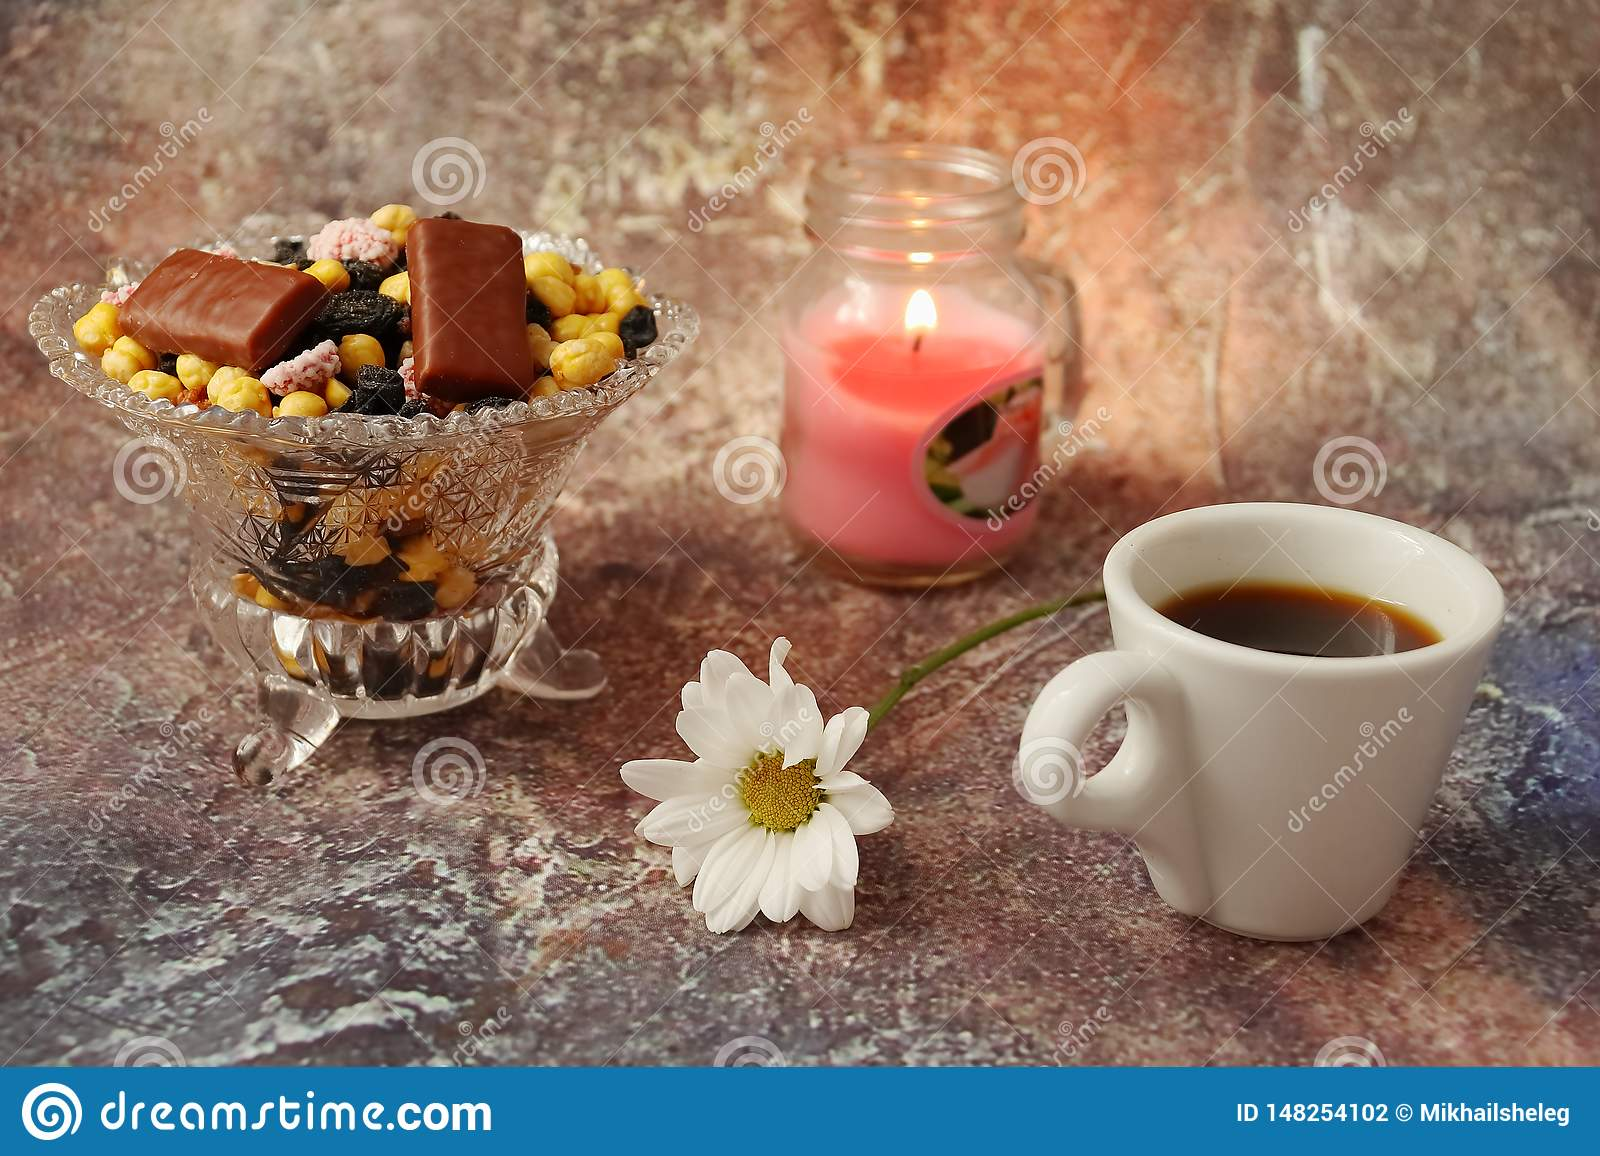 Morning coffee in a hurry: a cup of coffee, flowers in a vase, dried fruits and sweets in a vase, a burning candle